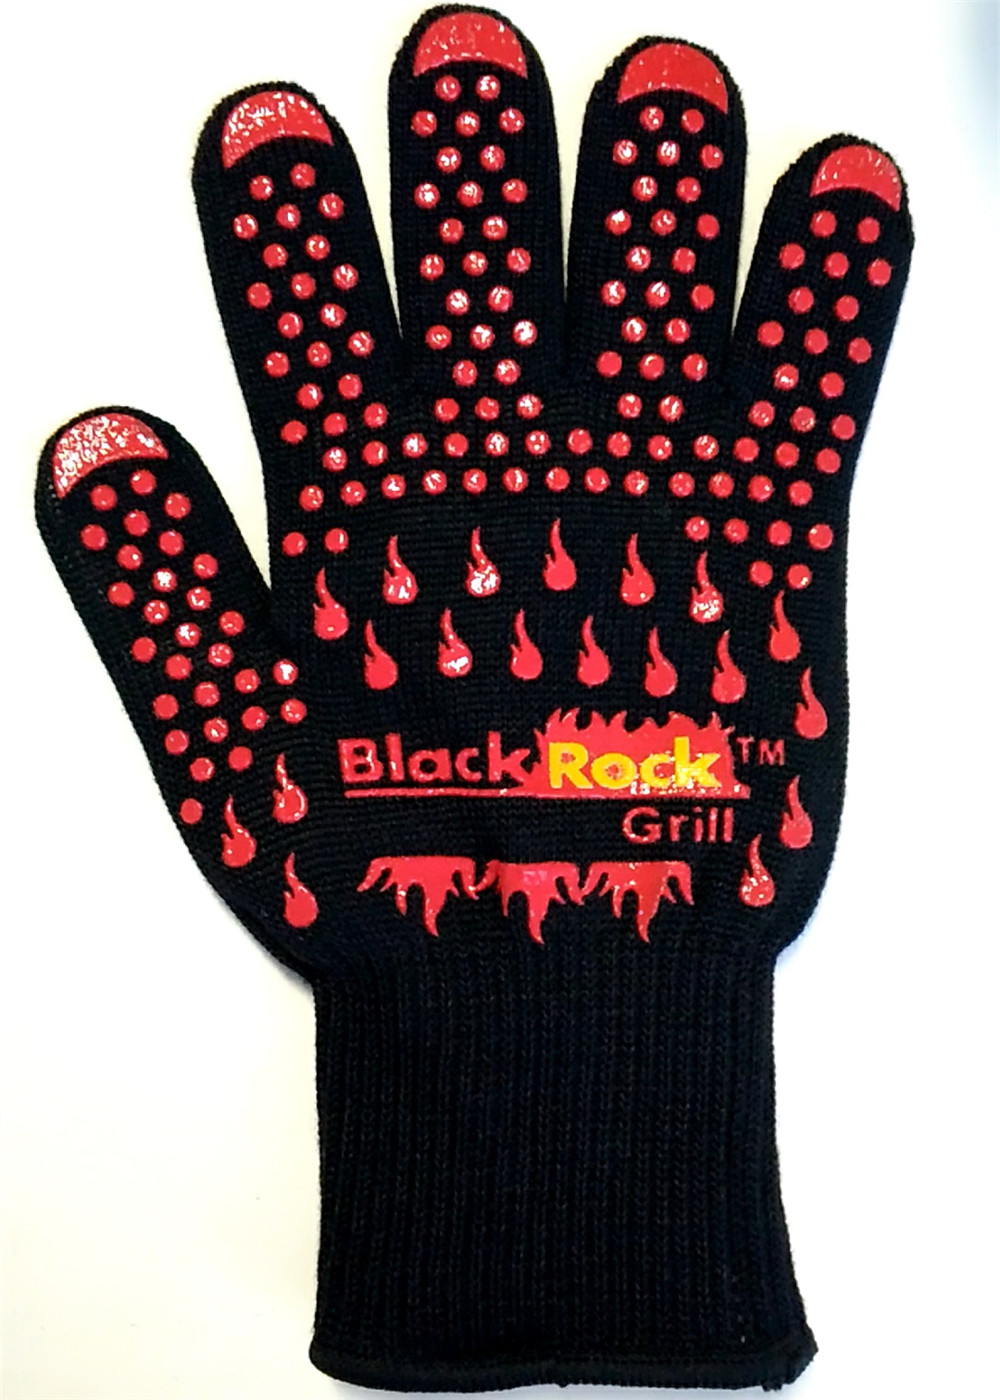 (One Pair)High quality Heat resistant glove BBQ Oven glove Protecting hand from fire use for grill cooking kitchen mr grill heat resistant oven